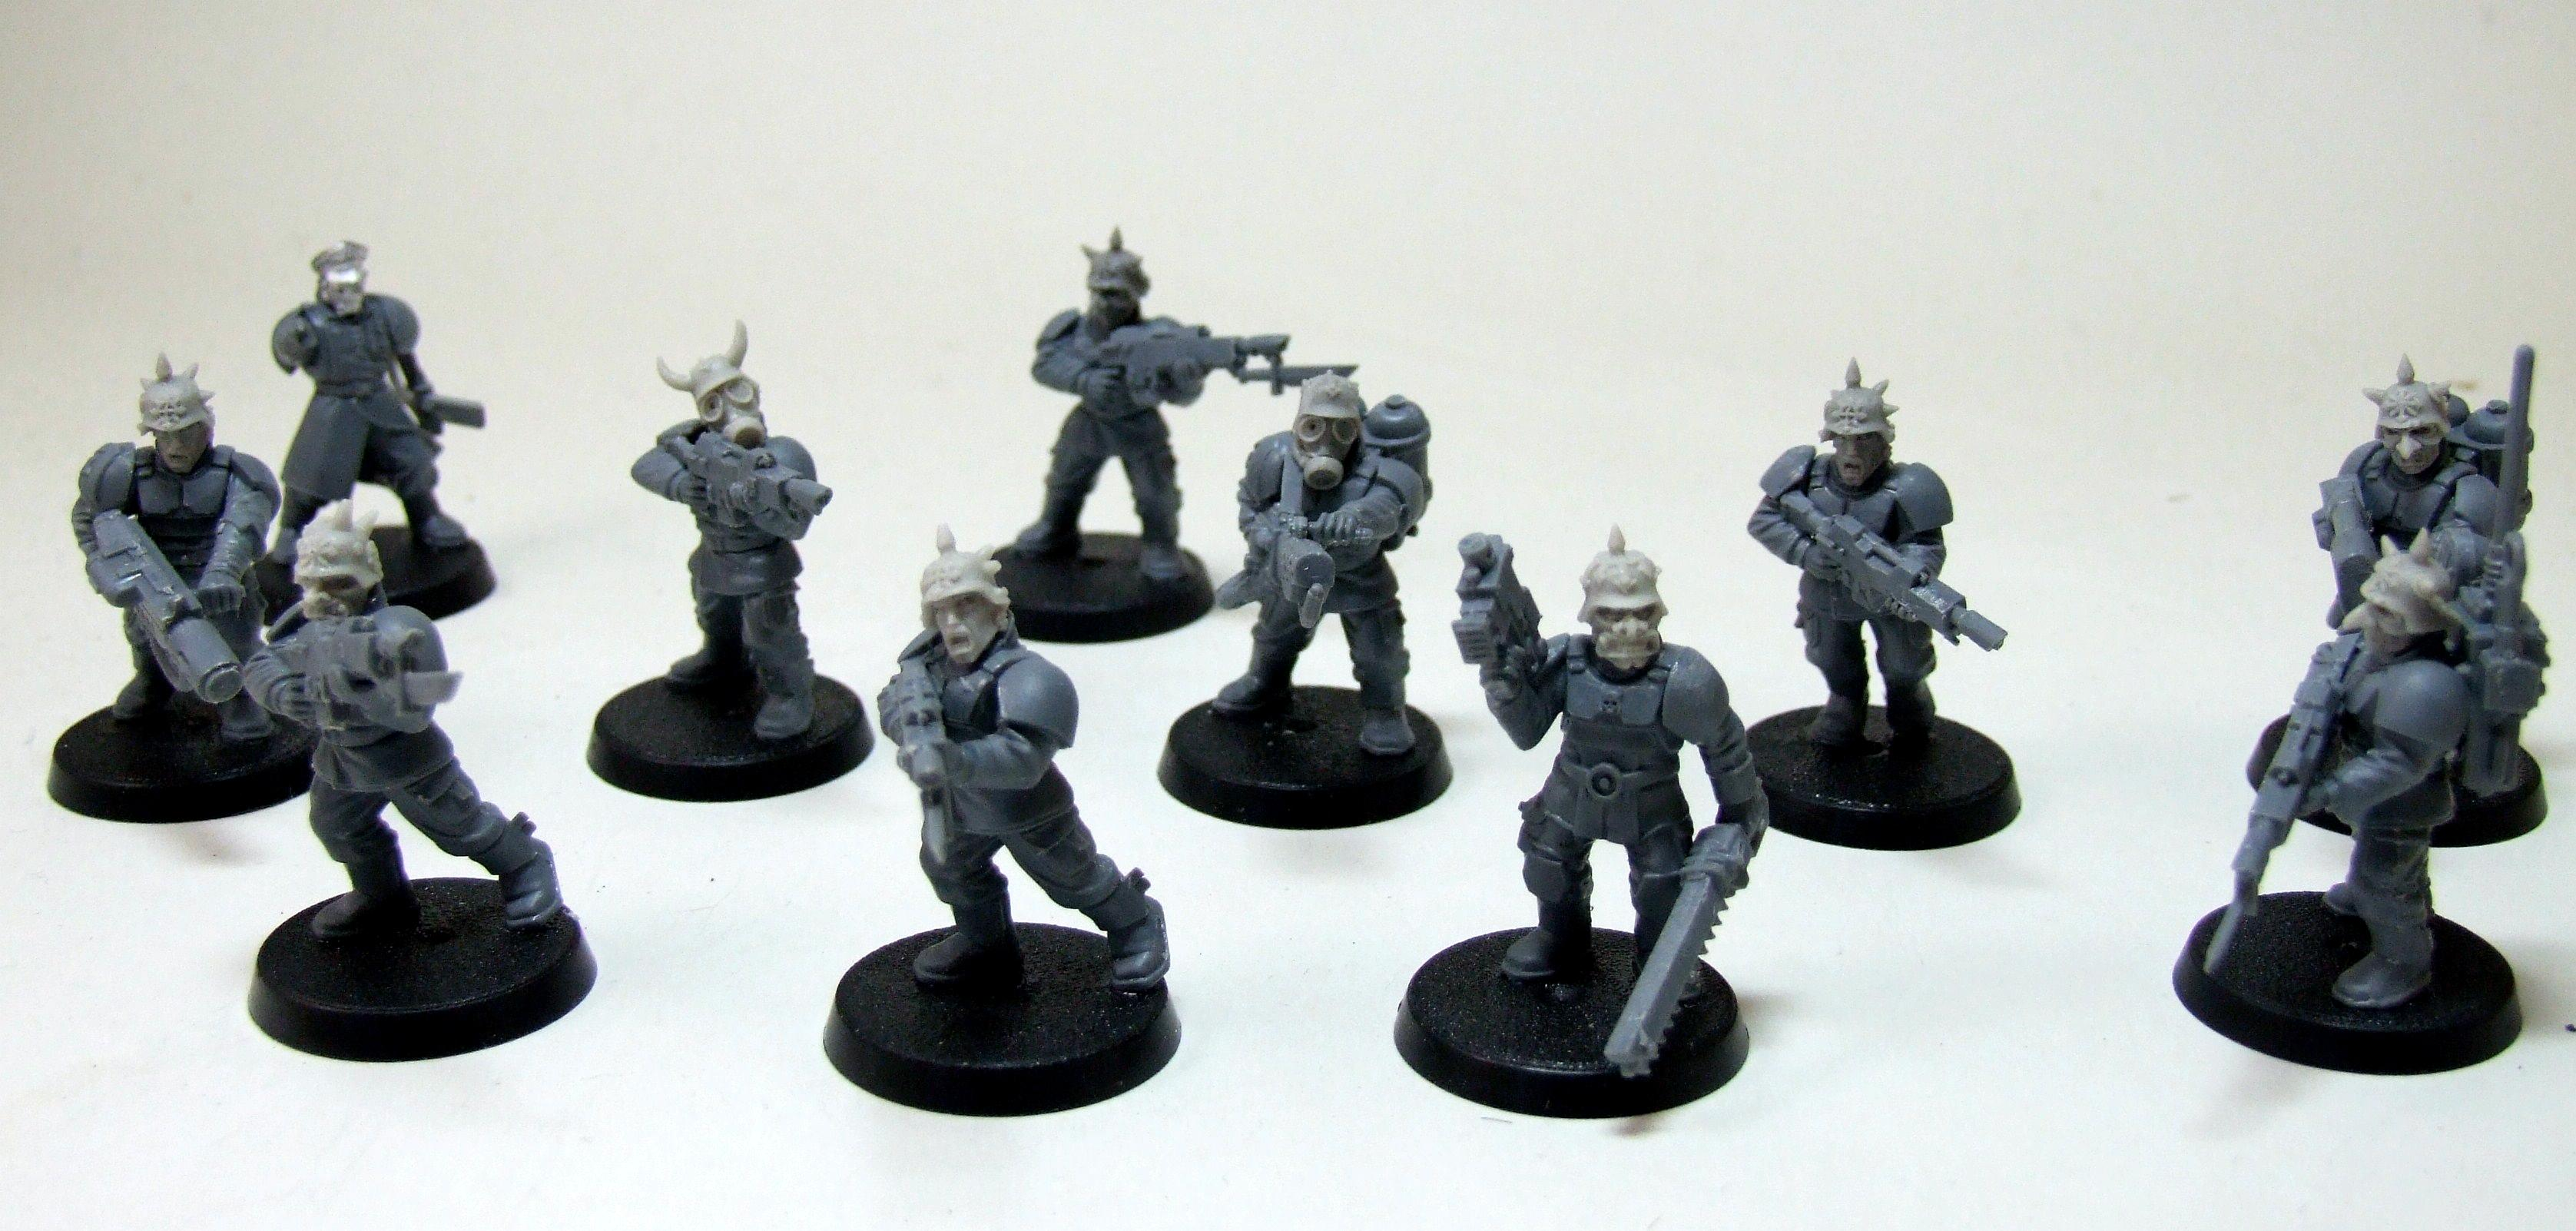 Imperial Guard, Renegades, Traitor Guard